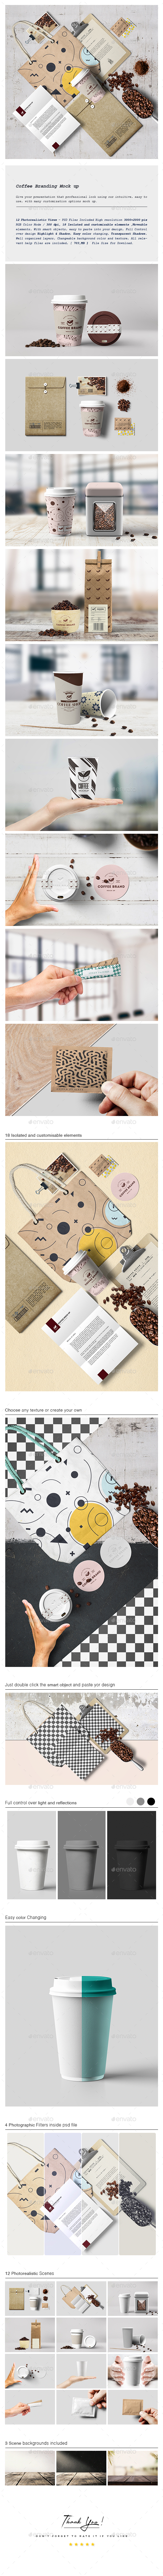 Coffee Branding Mock up - Stationery Print